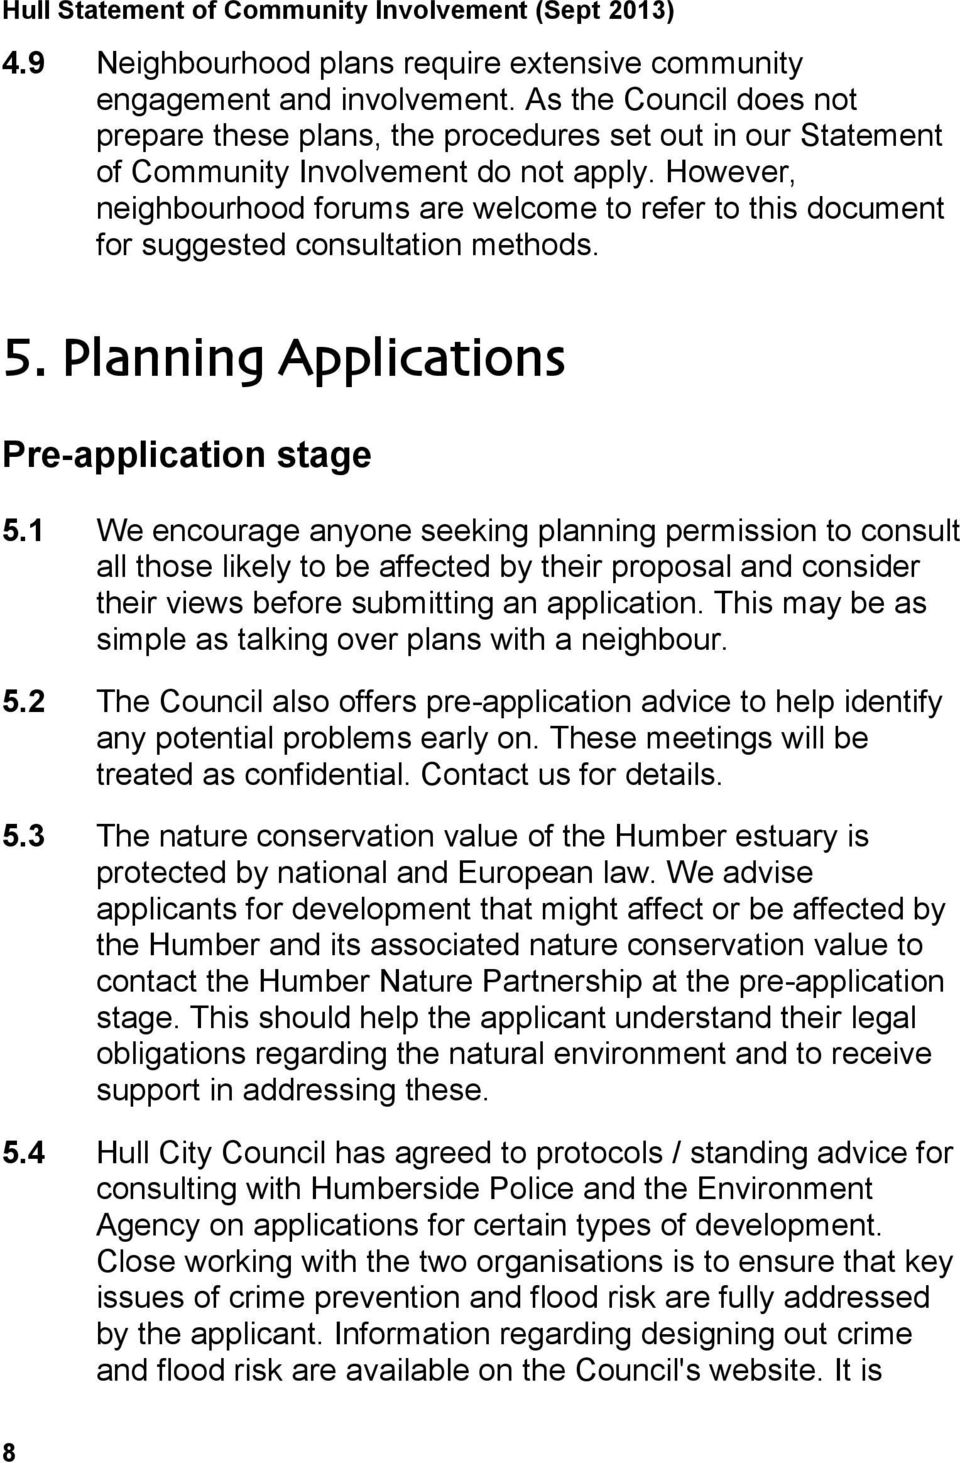 However, neighbourhood forums are welcome to refer to this document for suggested consultation methods. 5. Planning Applications Pre-application stage 5.